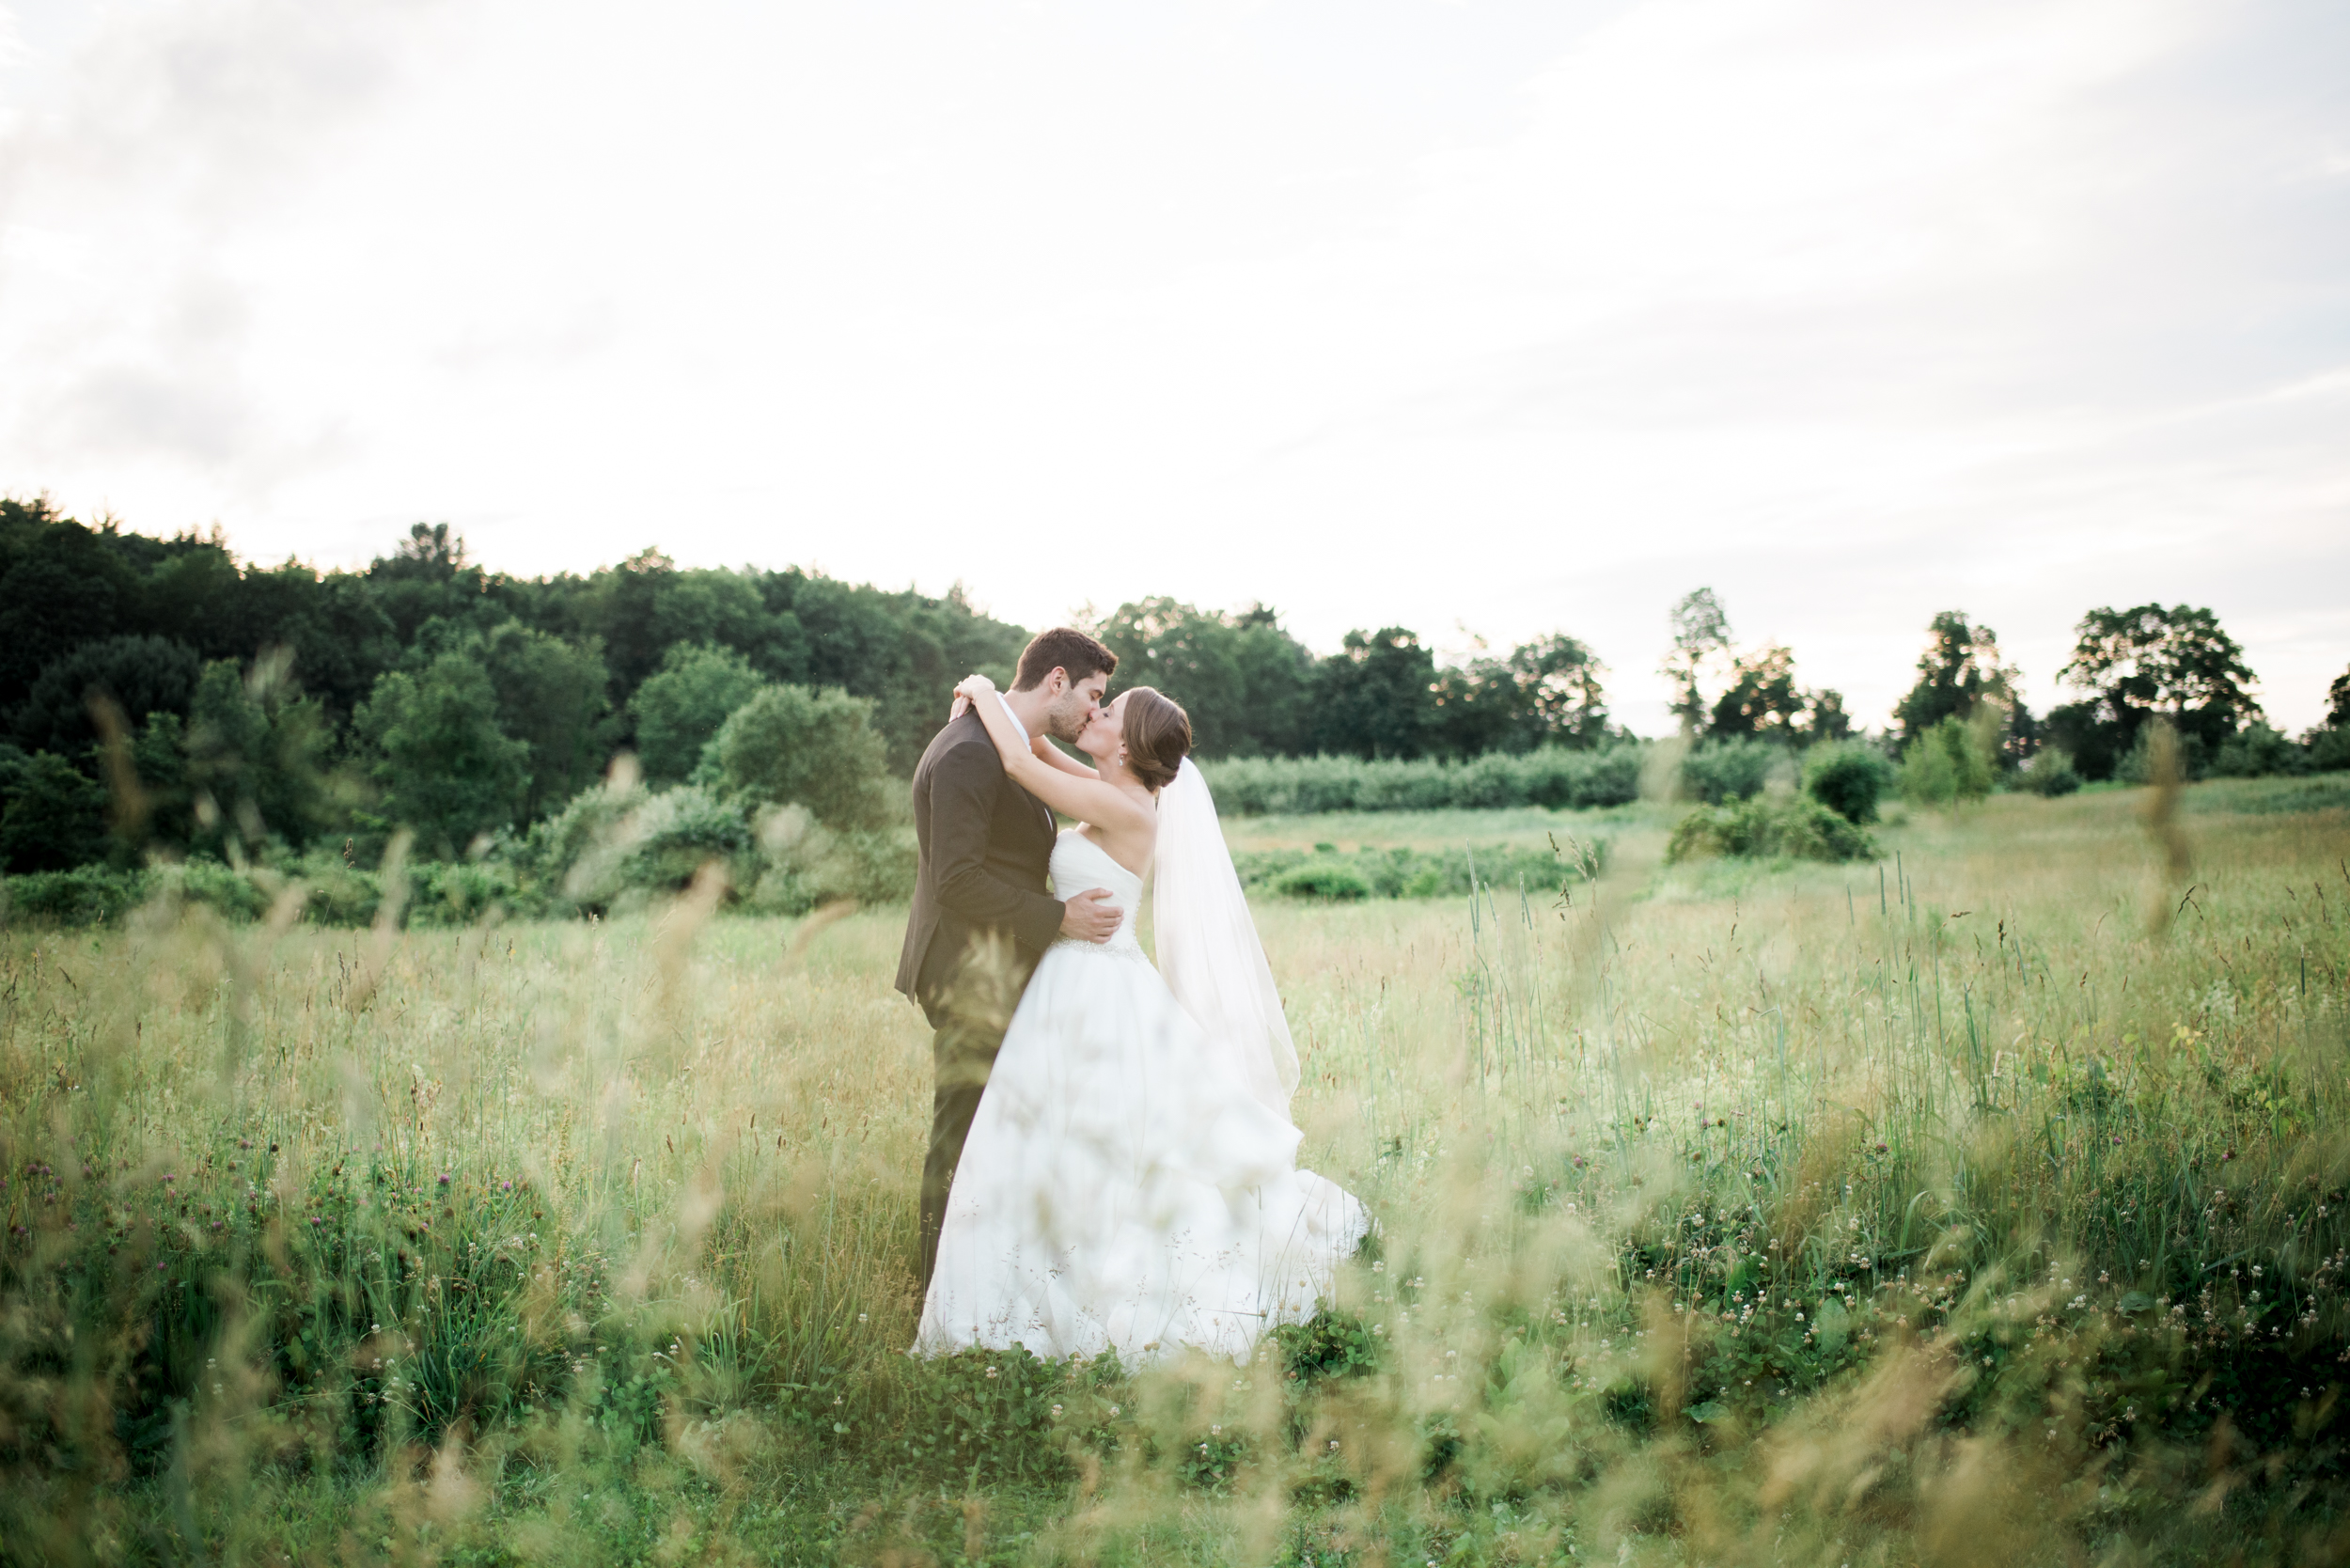 Top wedding photographers in the berkshires